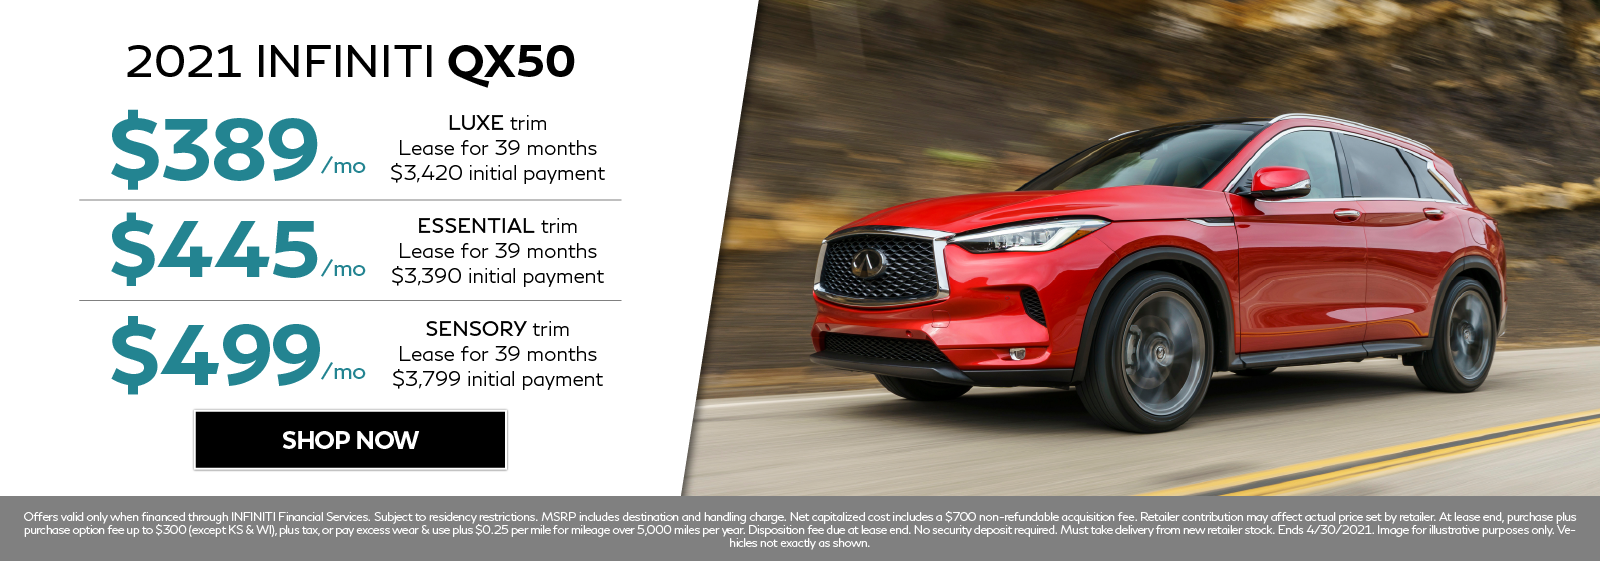 New 2021 INFINITI QX50 lease offers. Click to shop now.